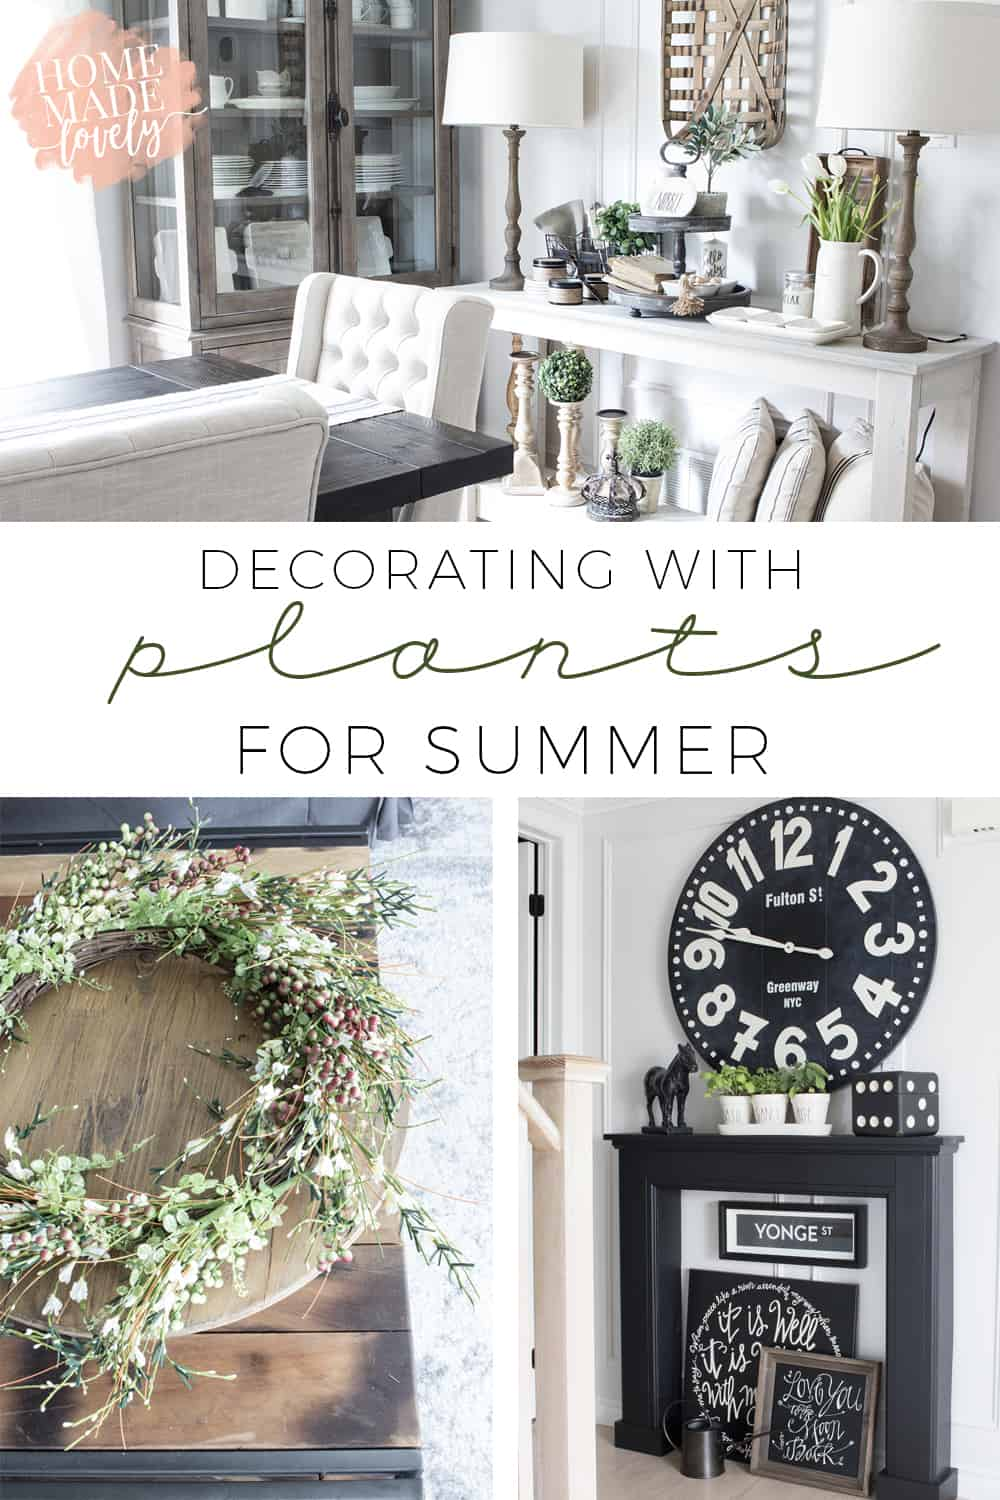 Picking a color to decorate with this summer was hard. I didn't want to change everything out this season. So, I'm decorating with plants for summer instead.